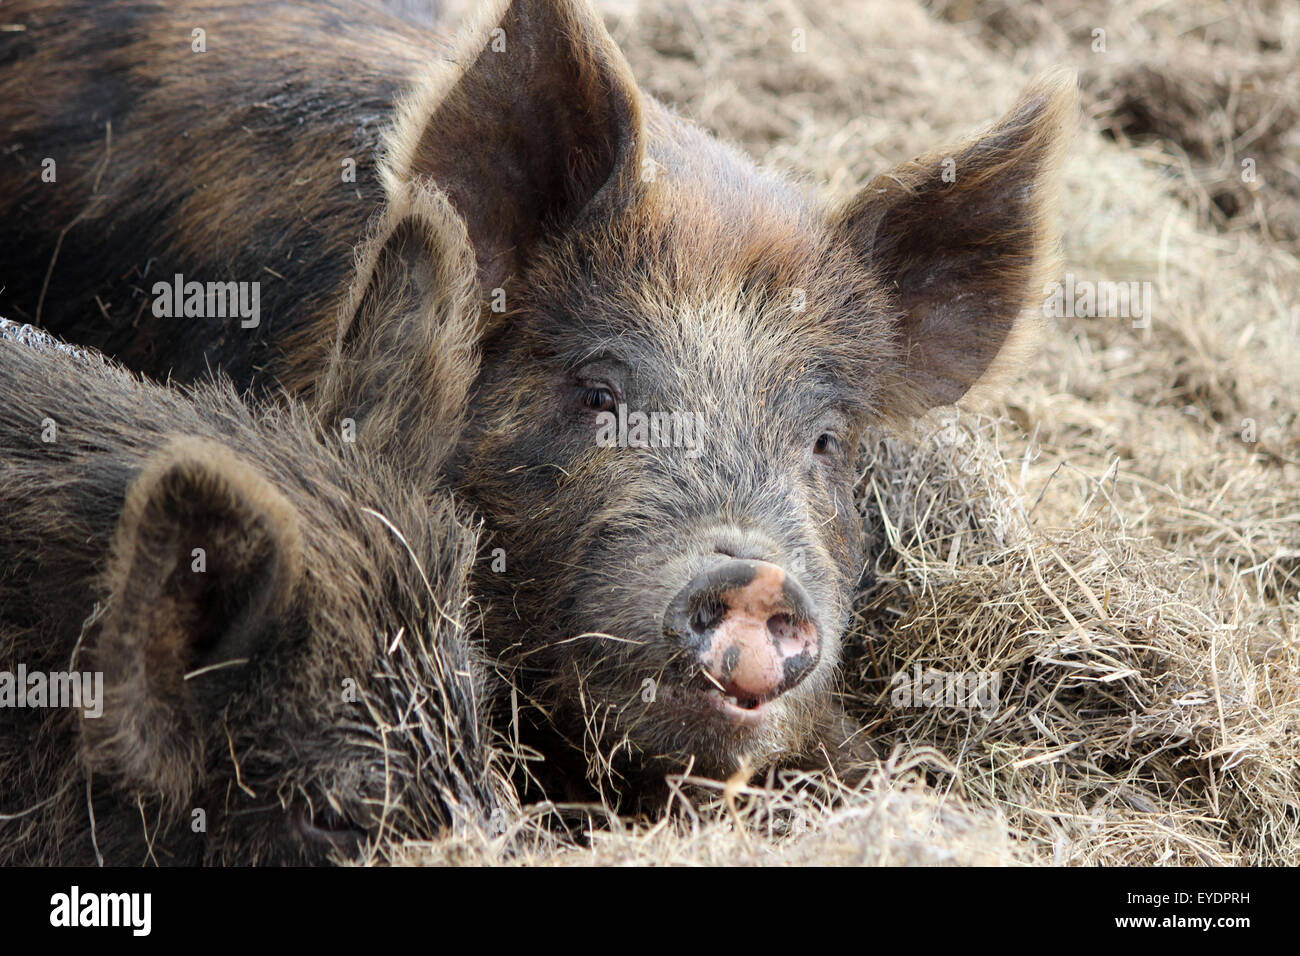 Two pigs on a farm lying in hay, one looking up at the camera - Stock Image